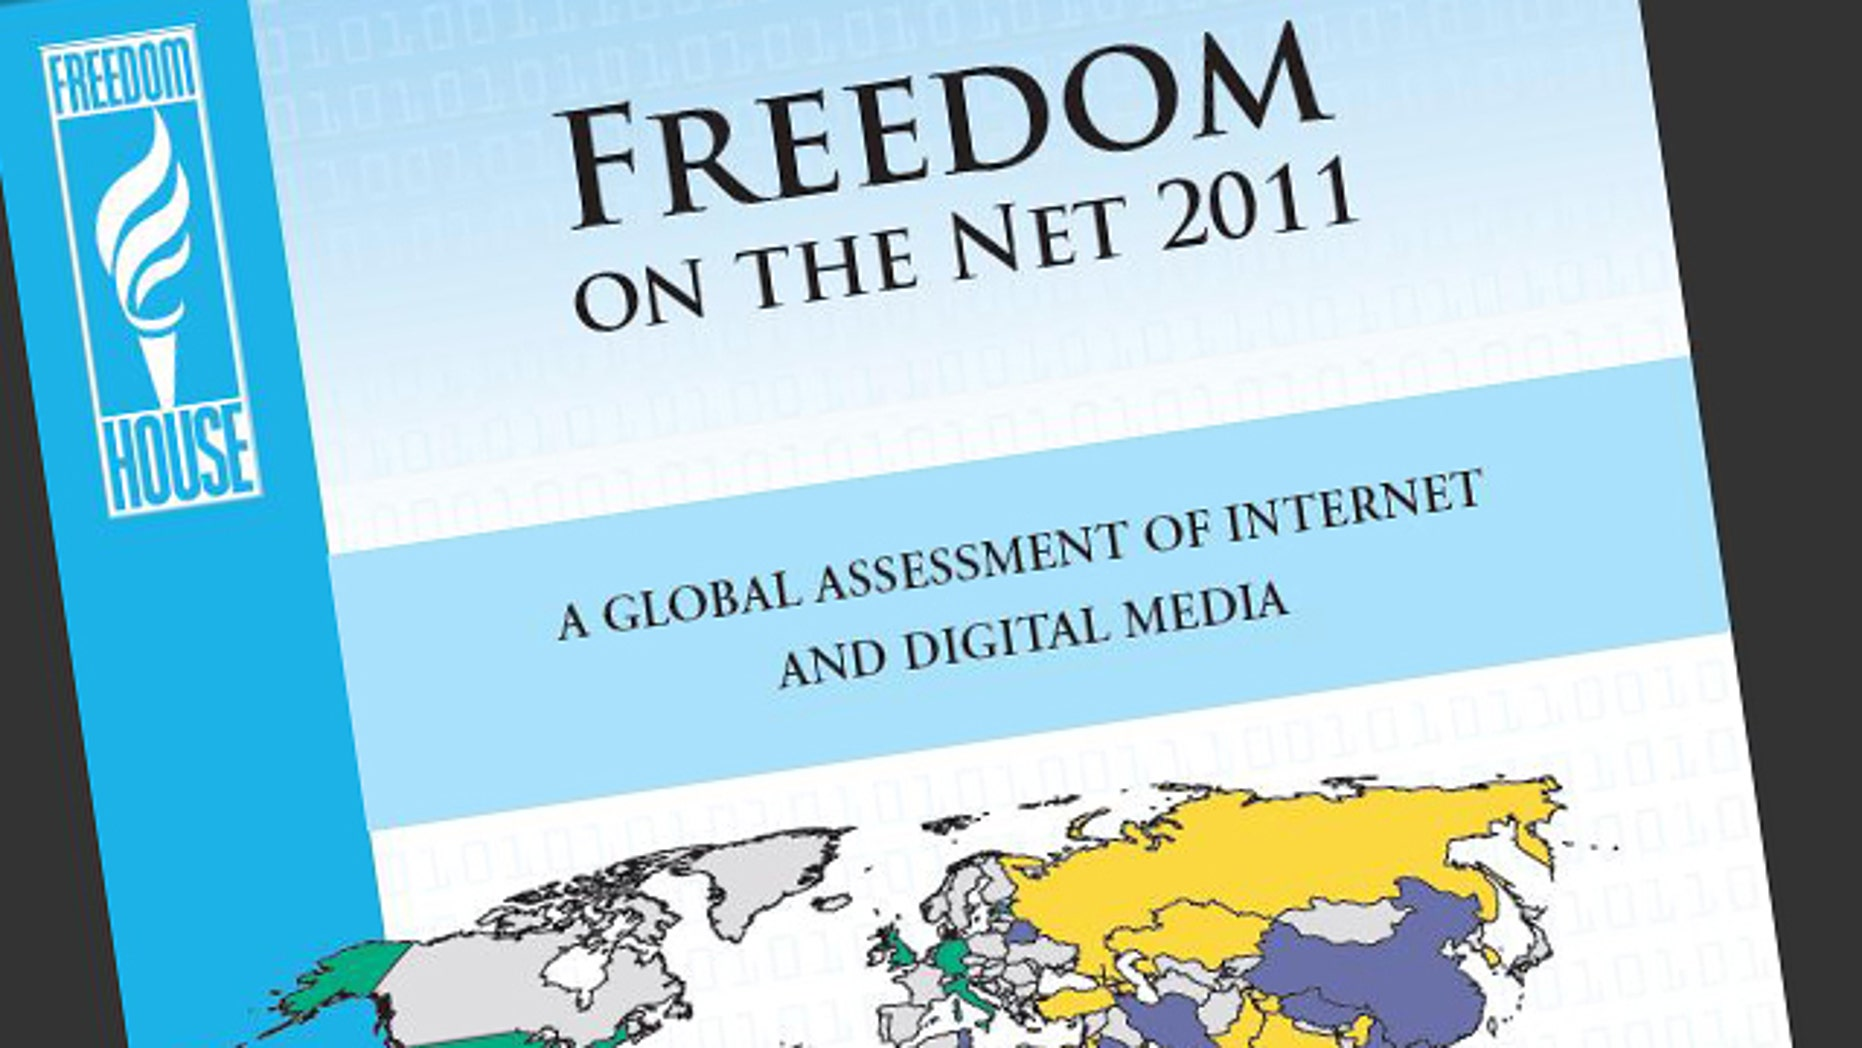 The cover of a 2011 report ranking countries by how freely their citizens can access the Internet.